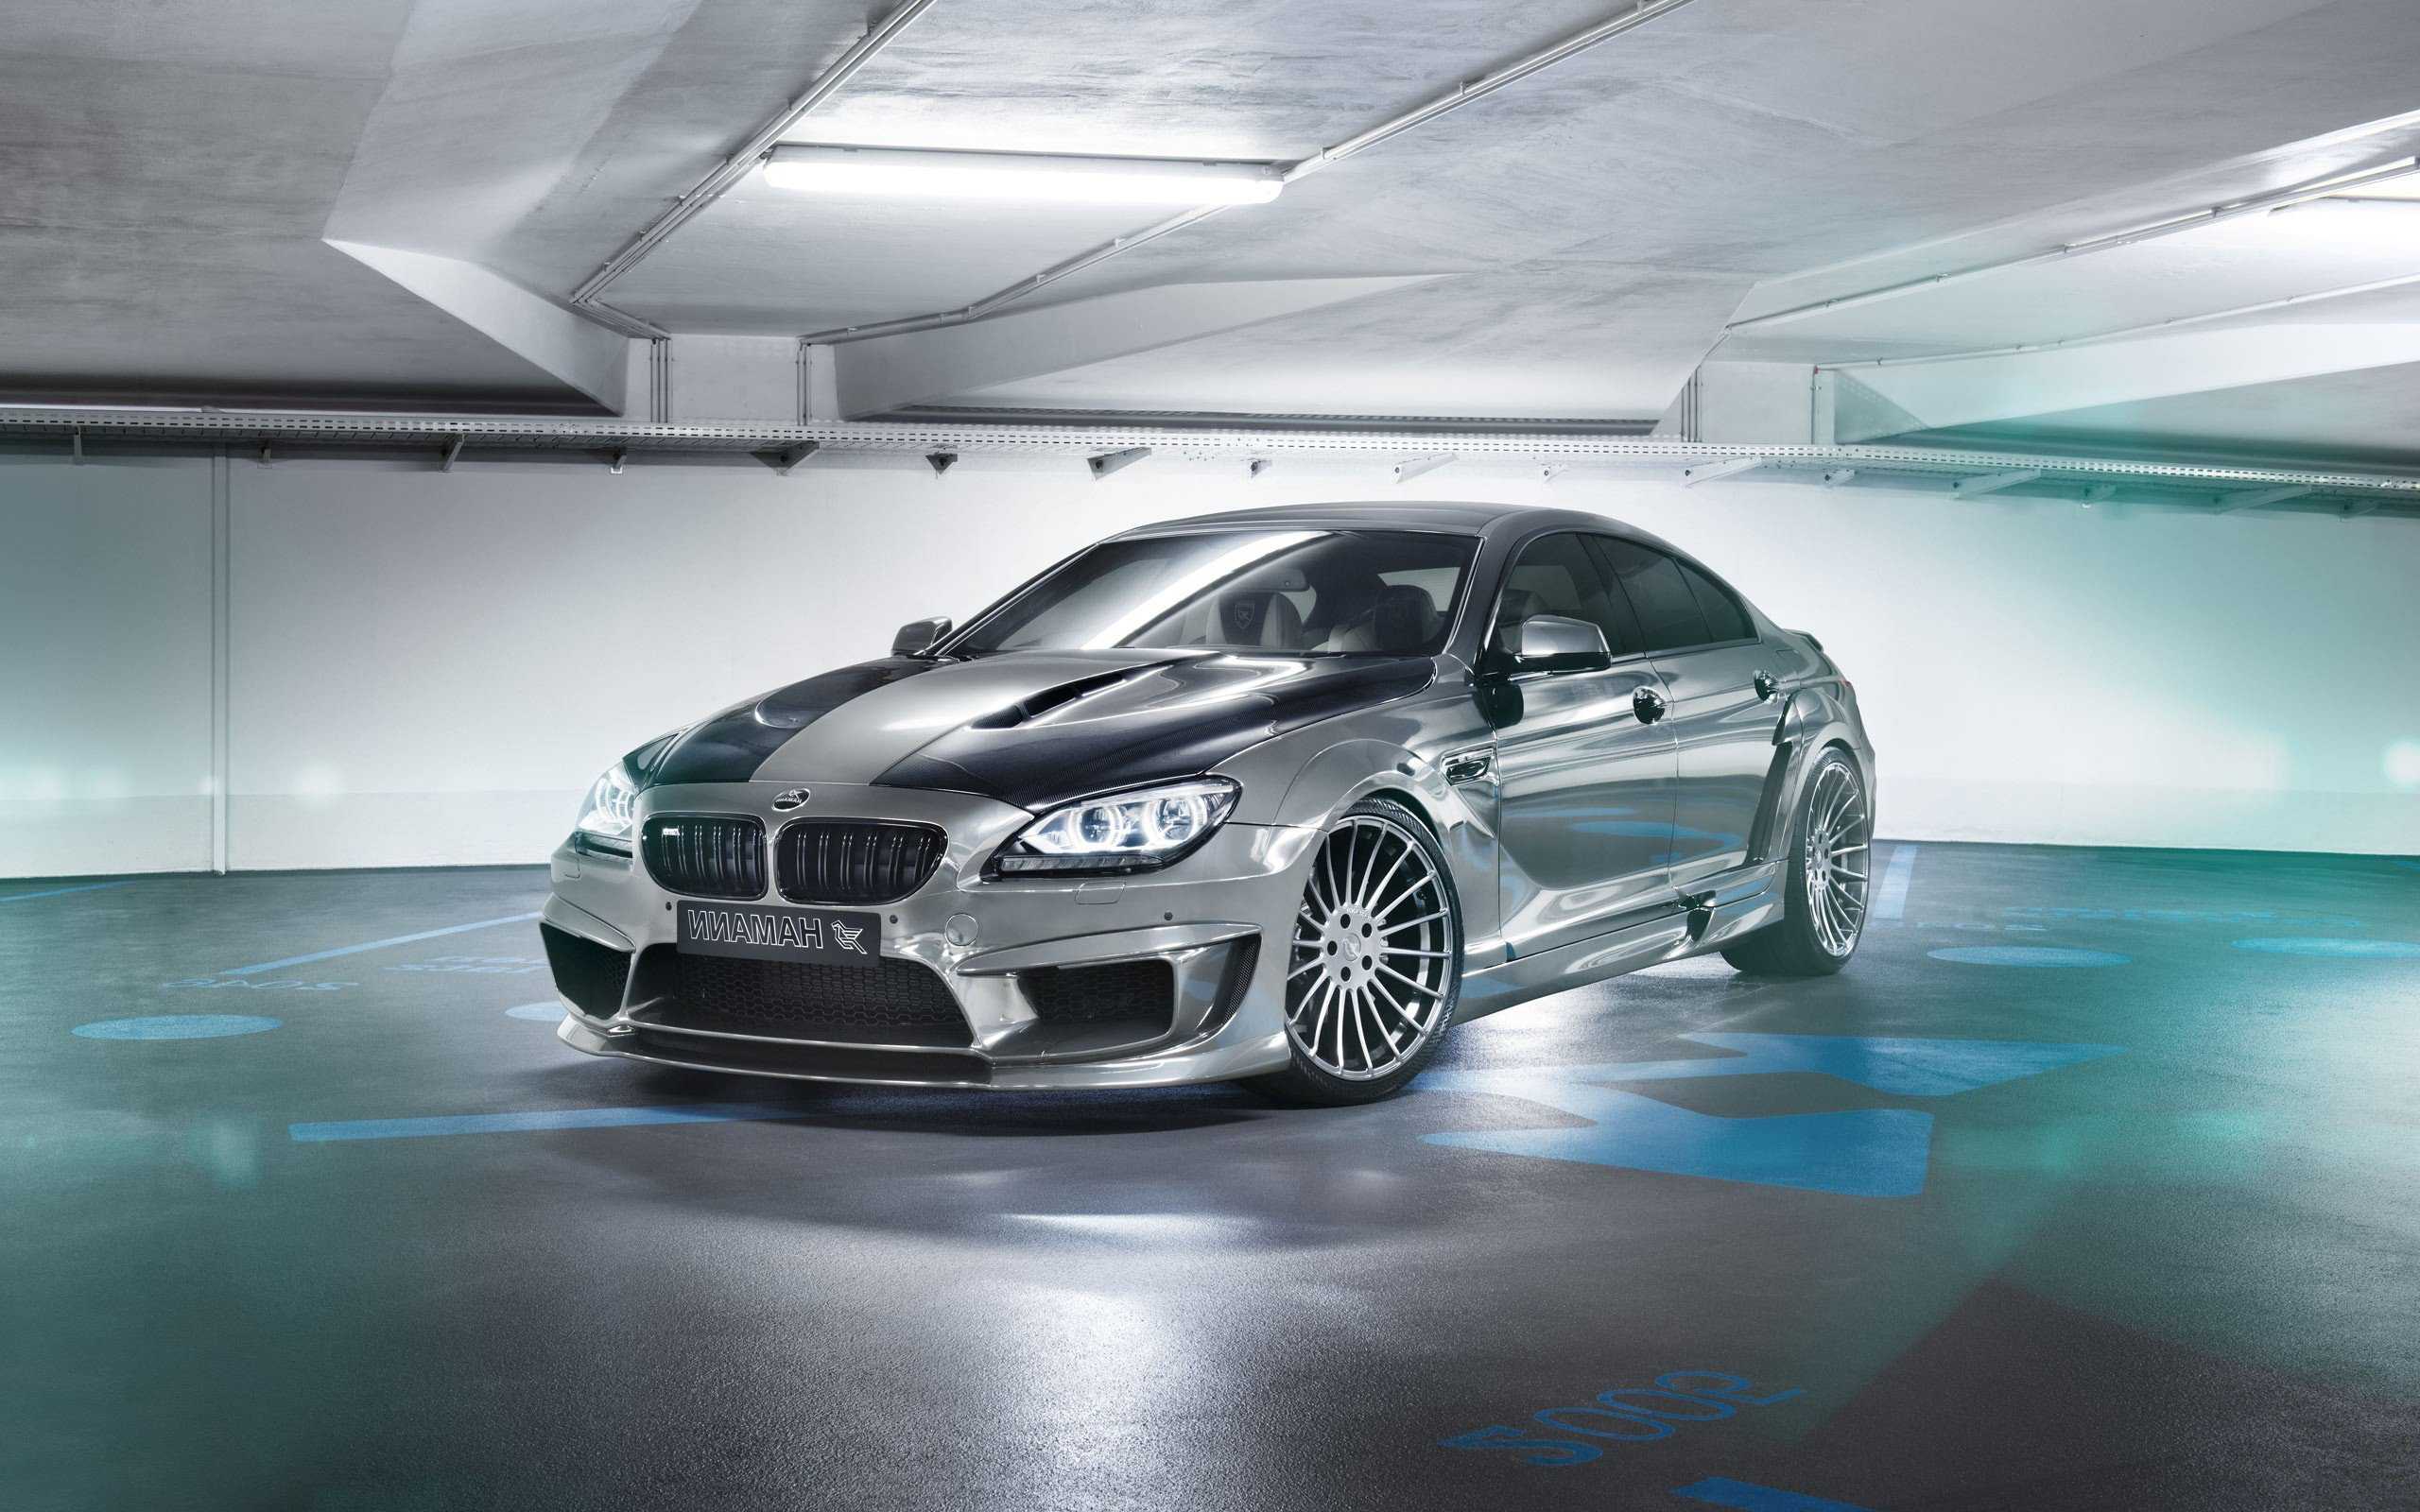 Beautiful Bmw M6 Wallpaper android \u2013 Kezanari.com